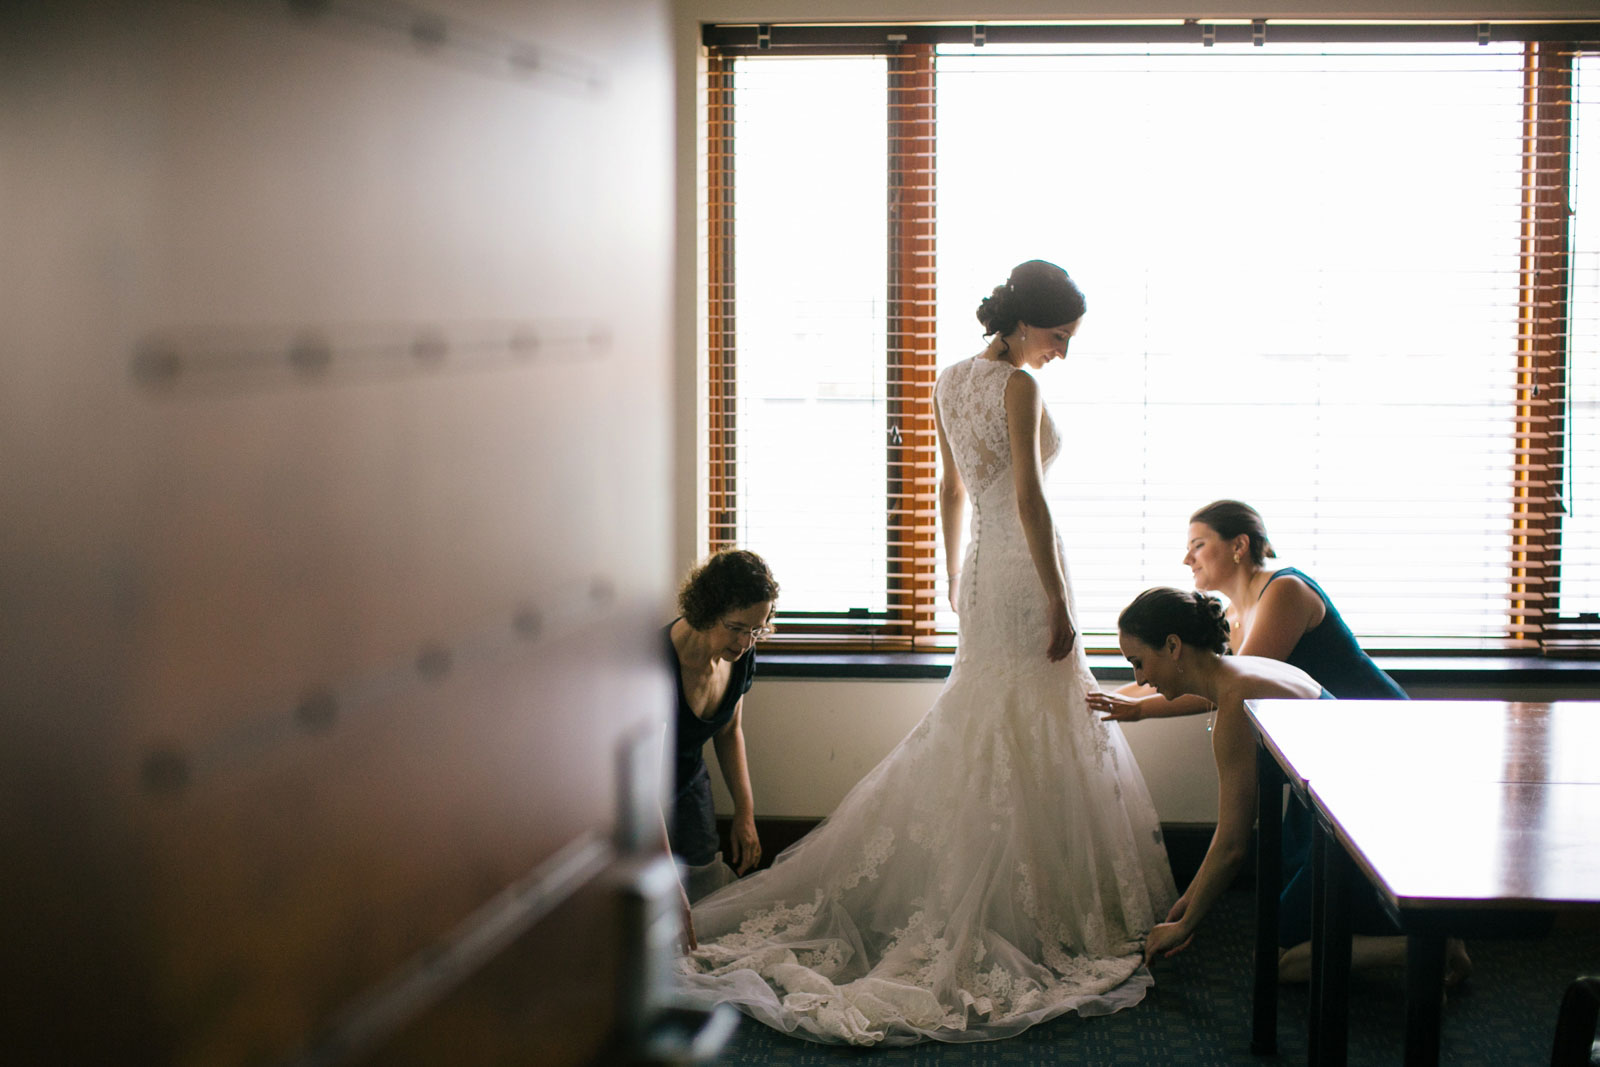 bridesmaids and mother of the bride helping bride into wedding dress in bridal suite at BEC